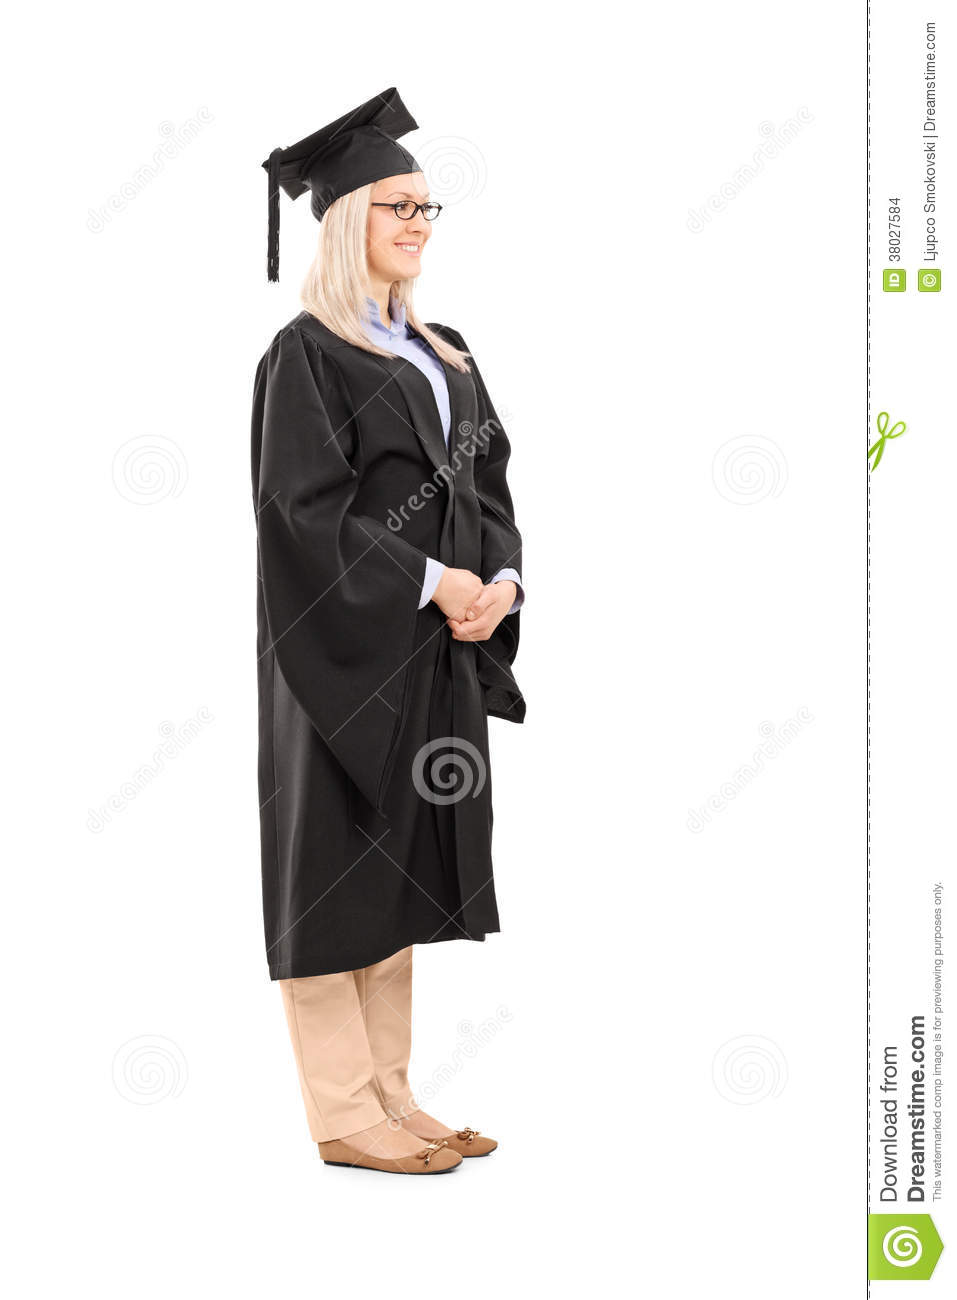 Full Length Portrait Of Young Woman In Graduation Gown Stock Photo ...